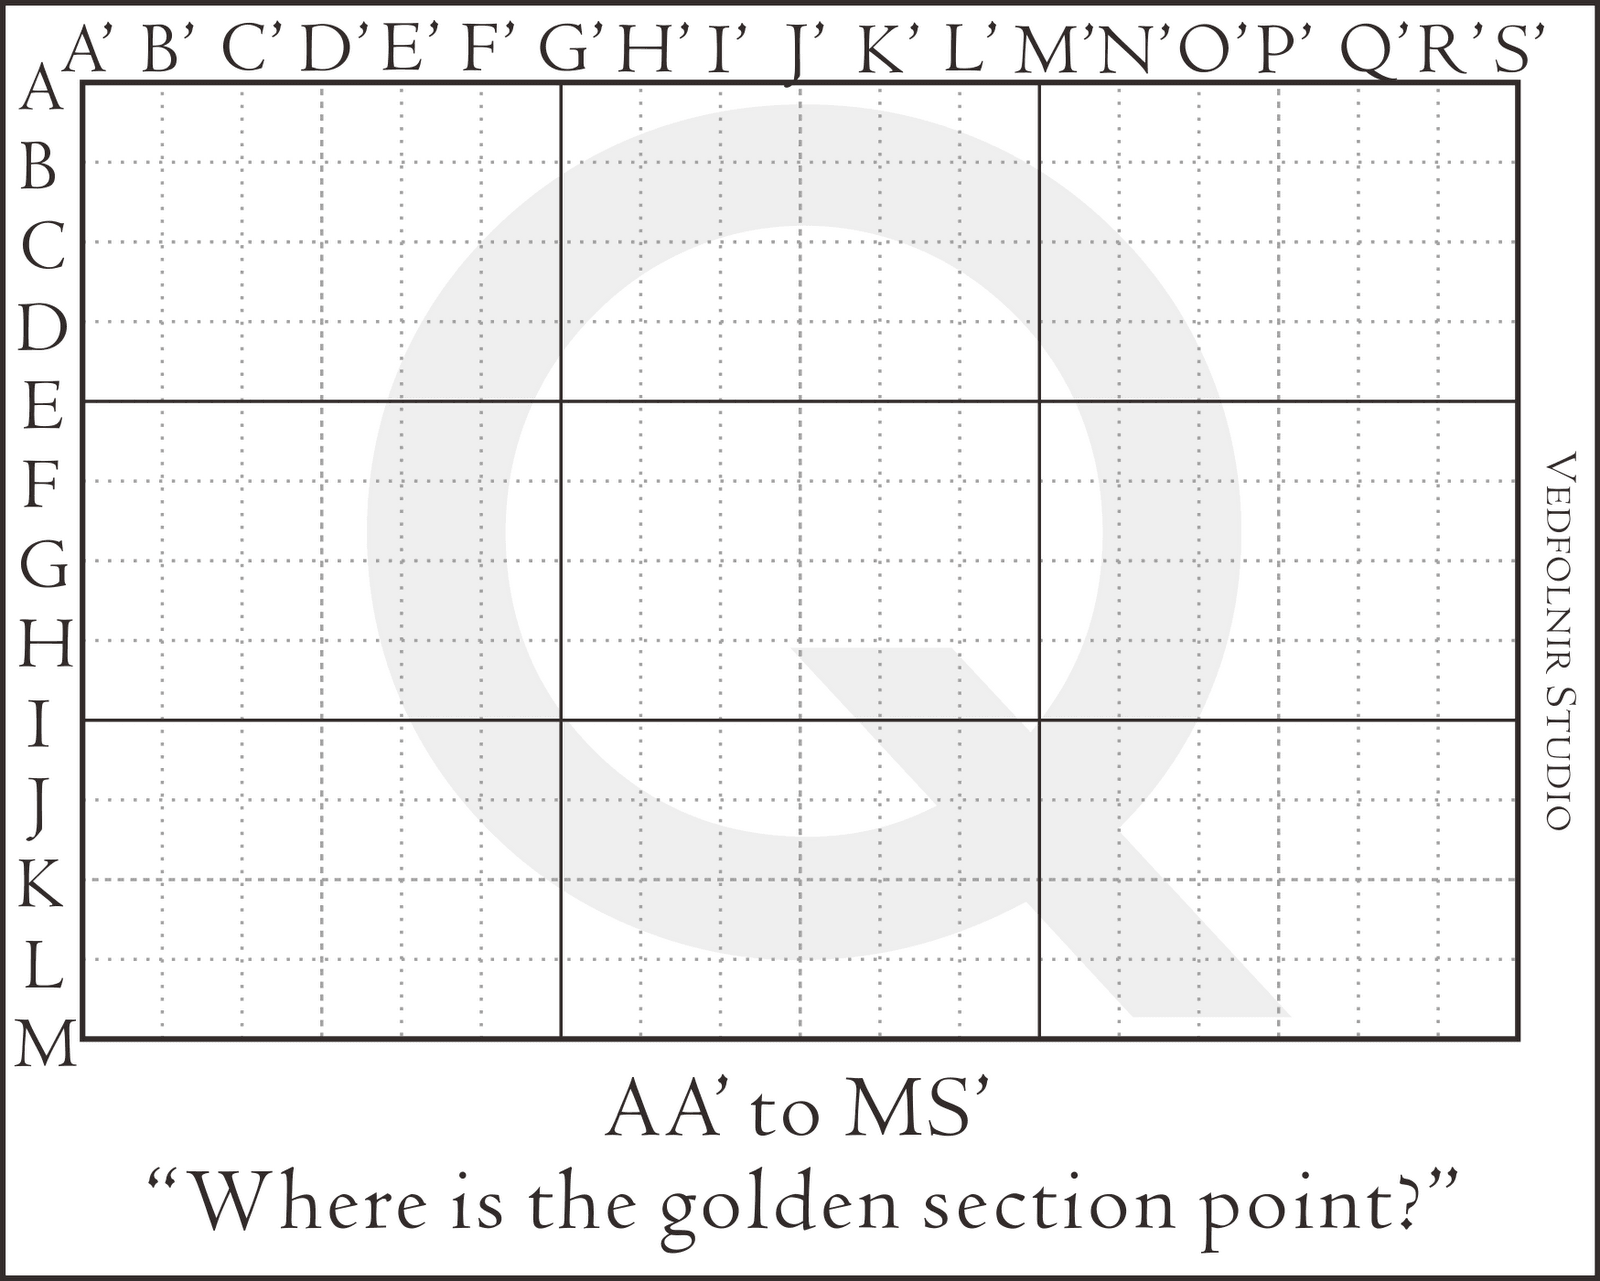 Golden-Section-Point-黃金分割-比例-vedfolnir